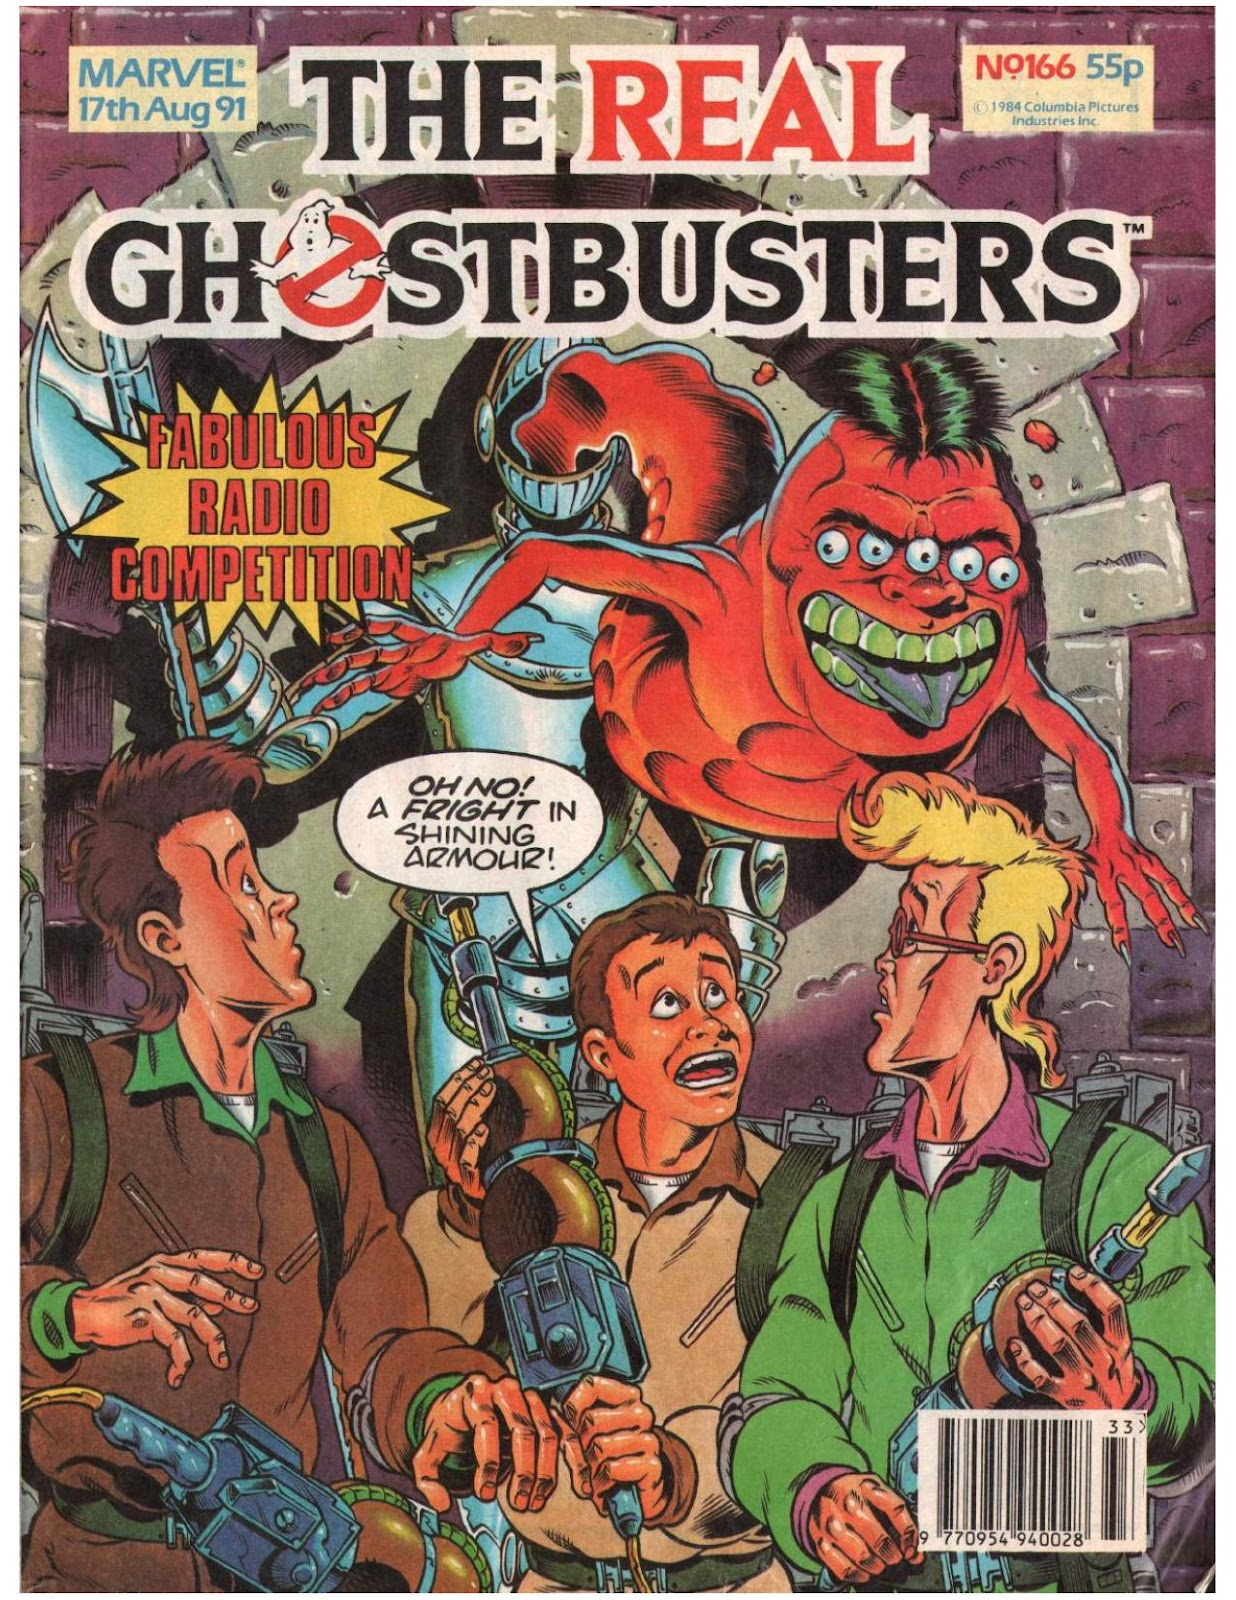 The Real Ghostbusters 166 Page 1